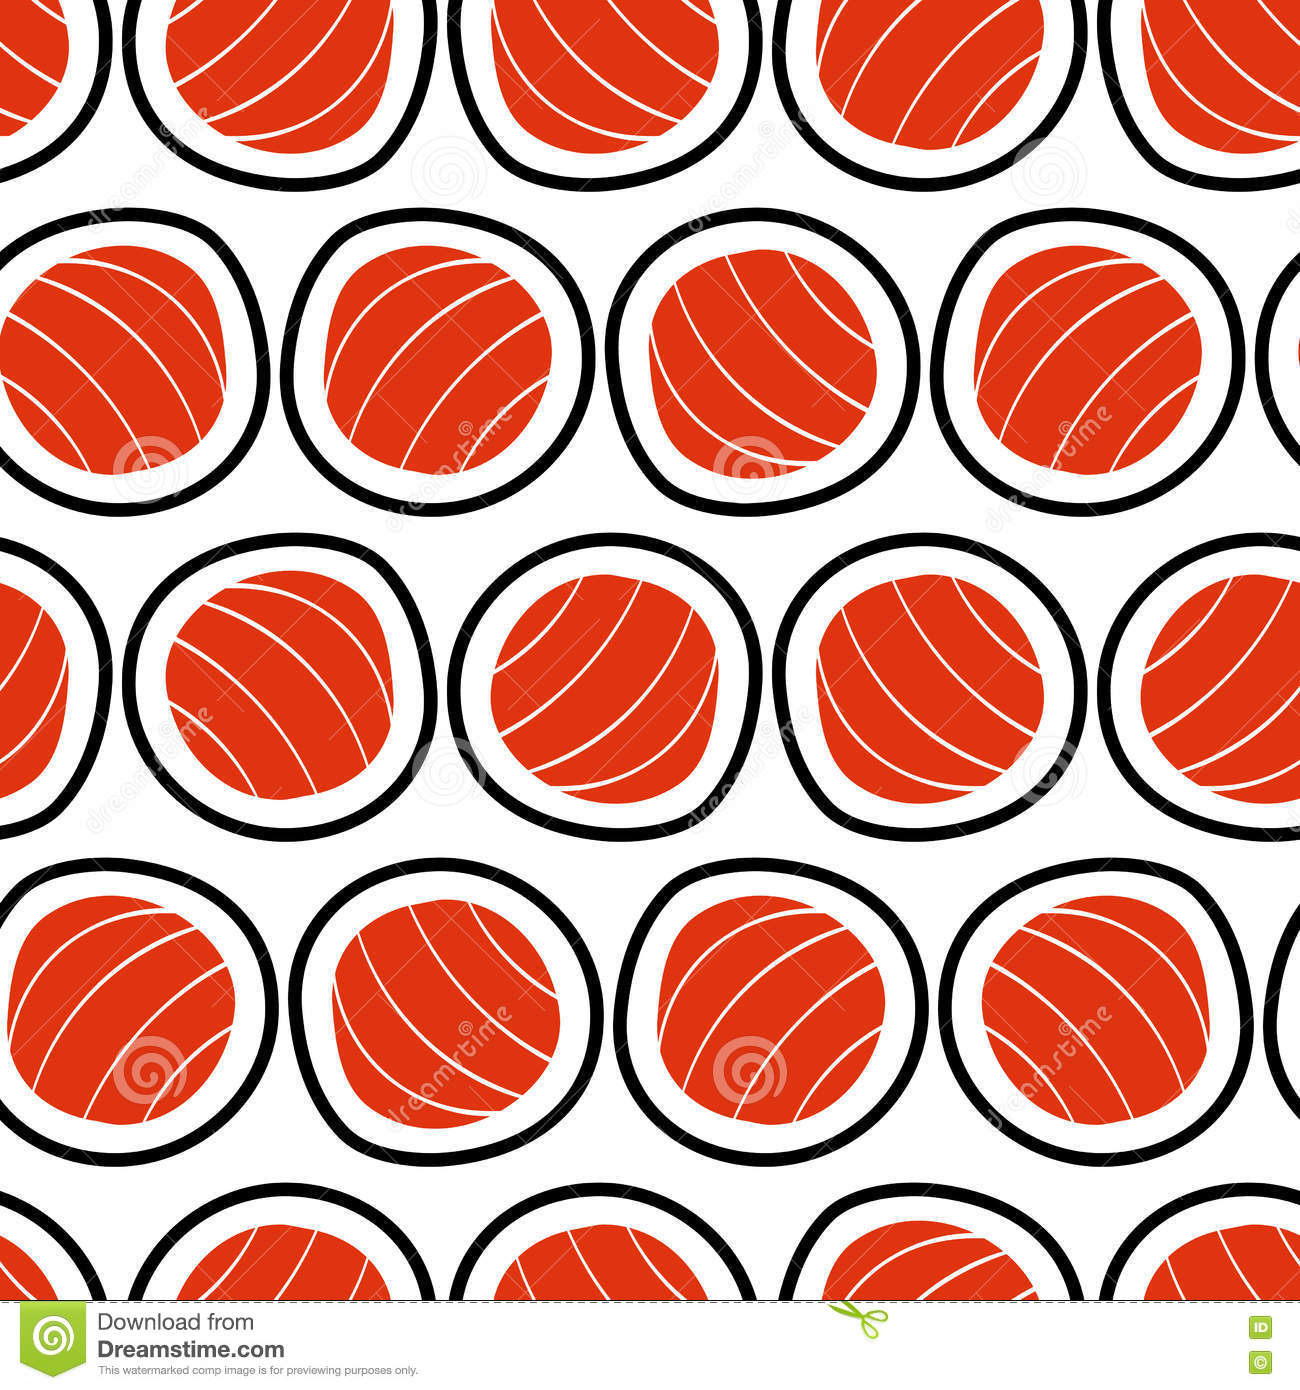 Sushi seamless pattern, hand drawn.. Emblem of japanese food, fish snack, susi, exotic restaurant, sea products delivery